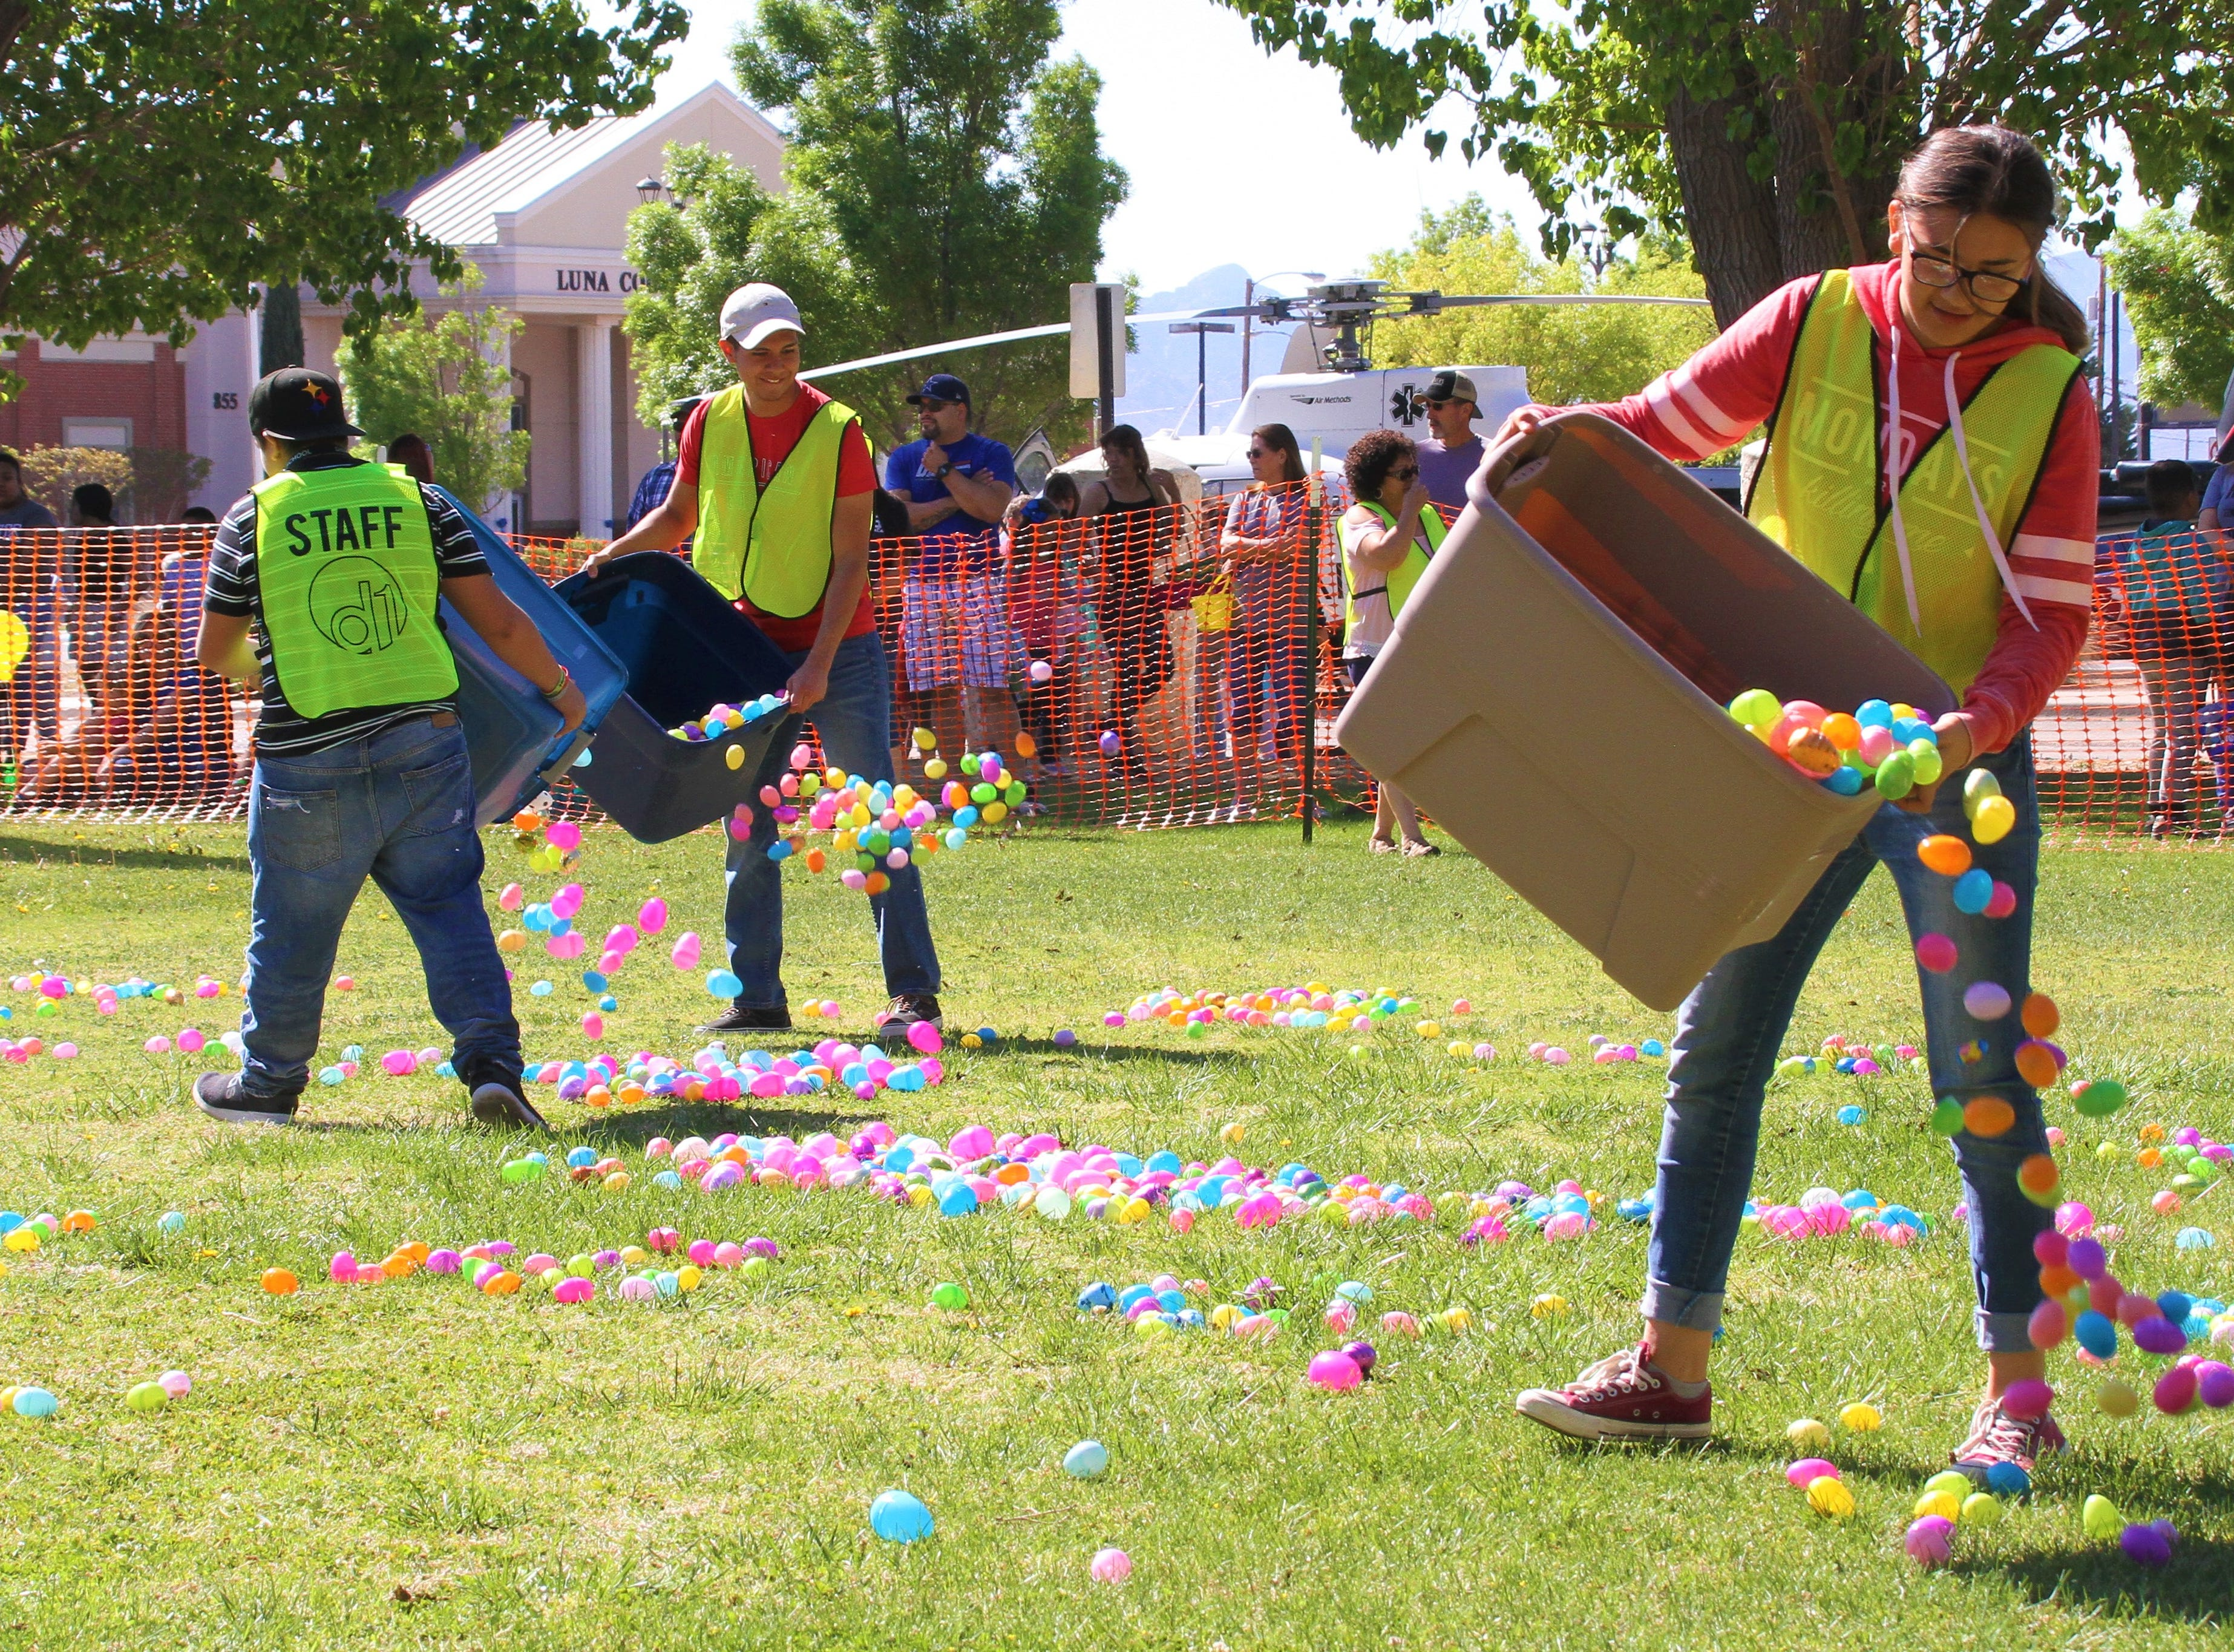 Deming First Assembly of God dumping hundreds of colorful plastic eggs onto the field.